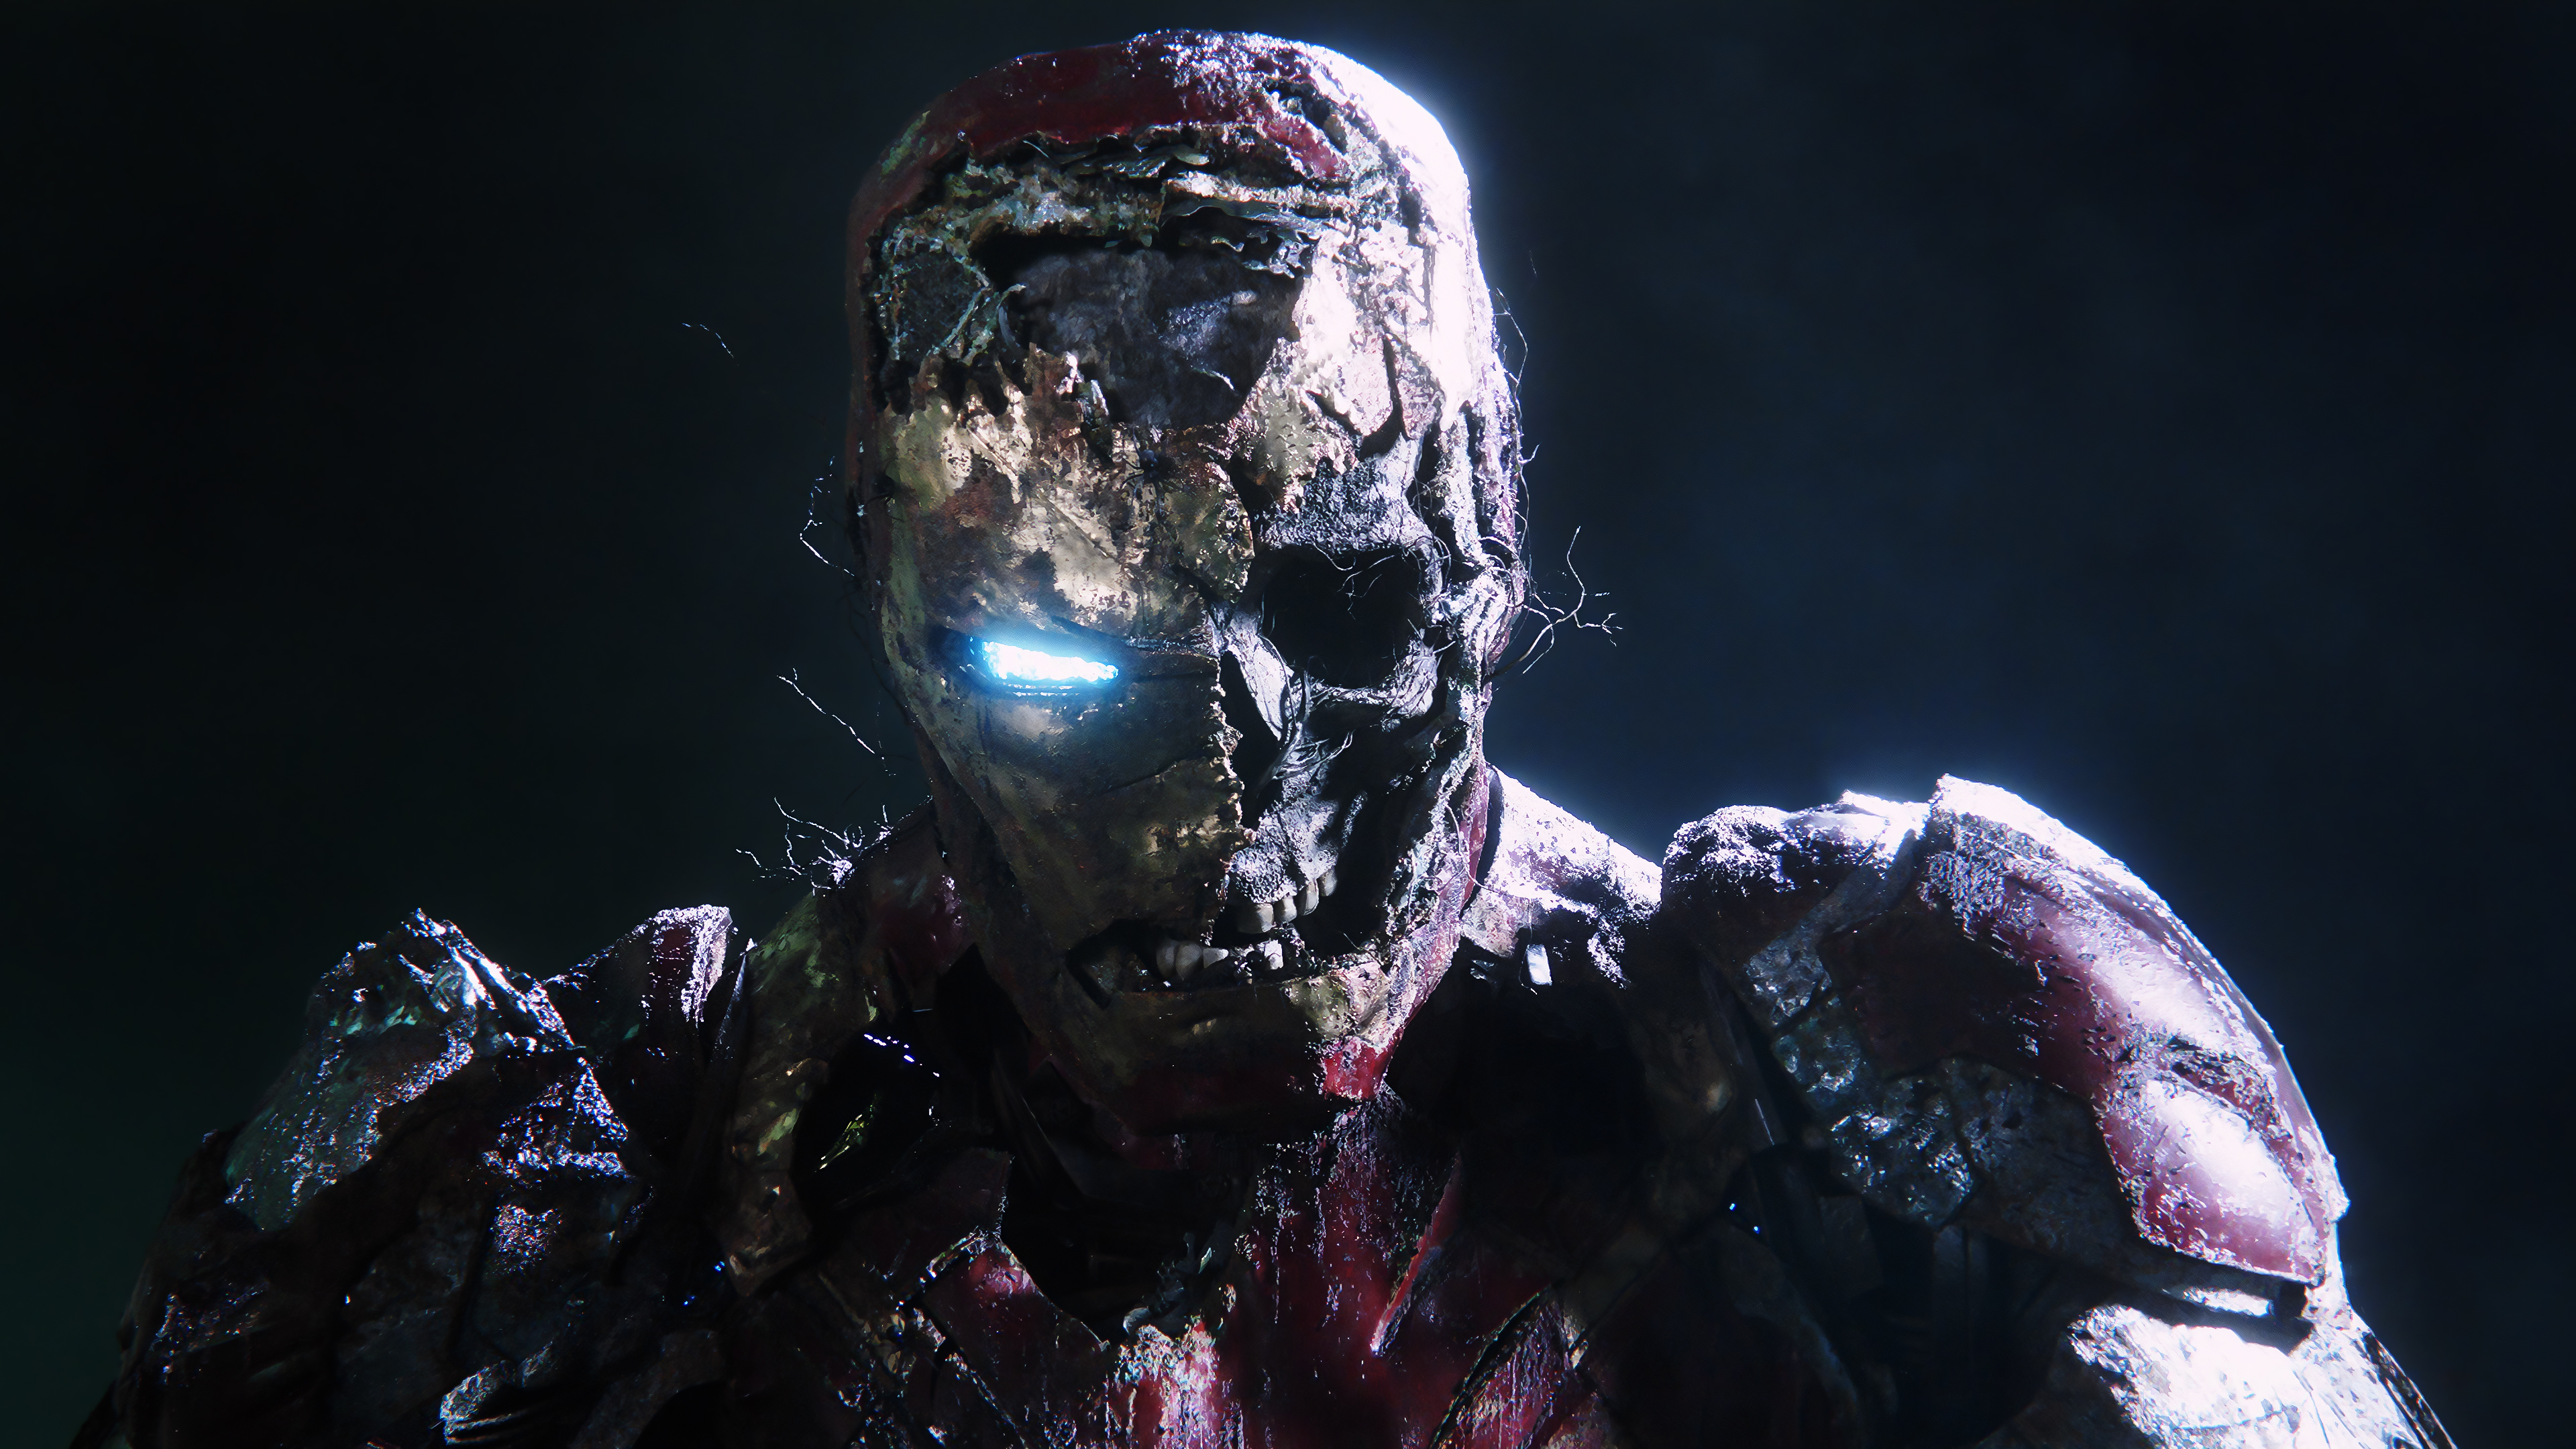 Wallpaper 4k Zombie Iron Man In Spiderman Far From Home 2019 Movies Wallpapers 4k Wallpapers Hd Wallpapers Iron Man Wallpapers Movies Wallpapers Spiderman Far From Home Wallpapers Superheroes Wallpapers